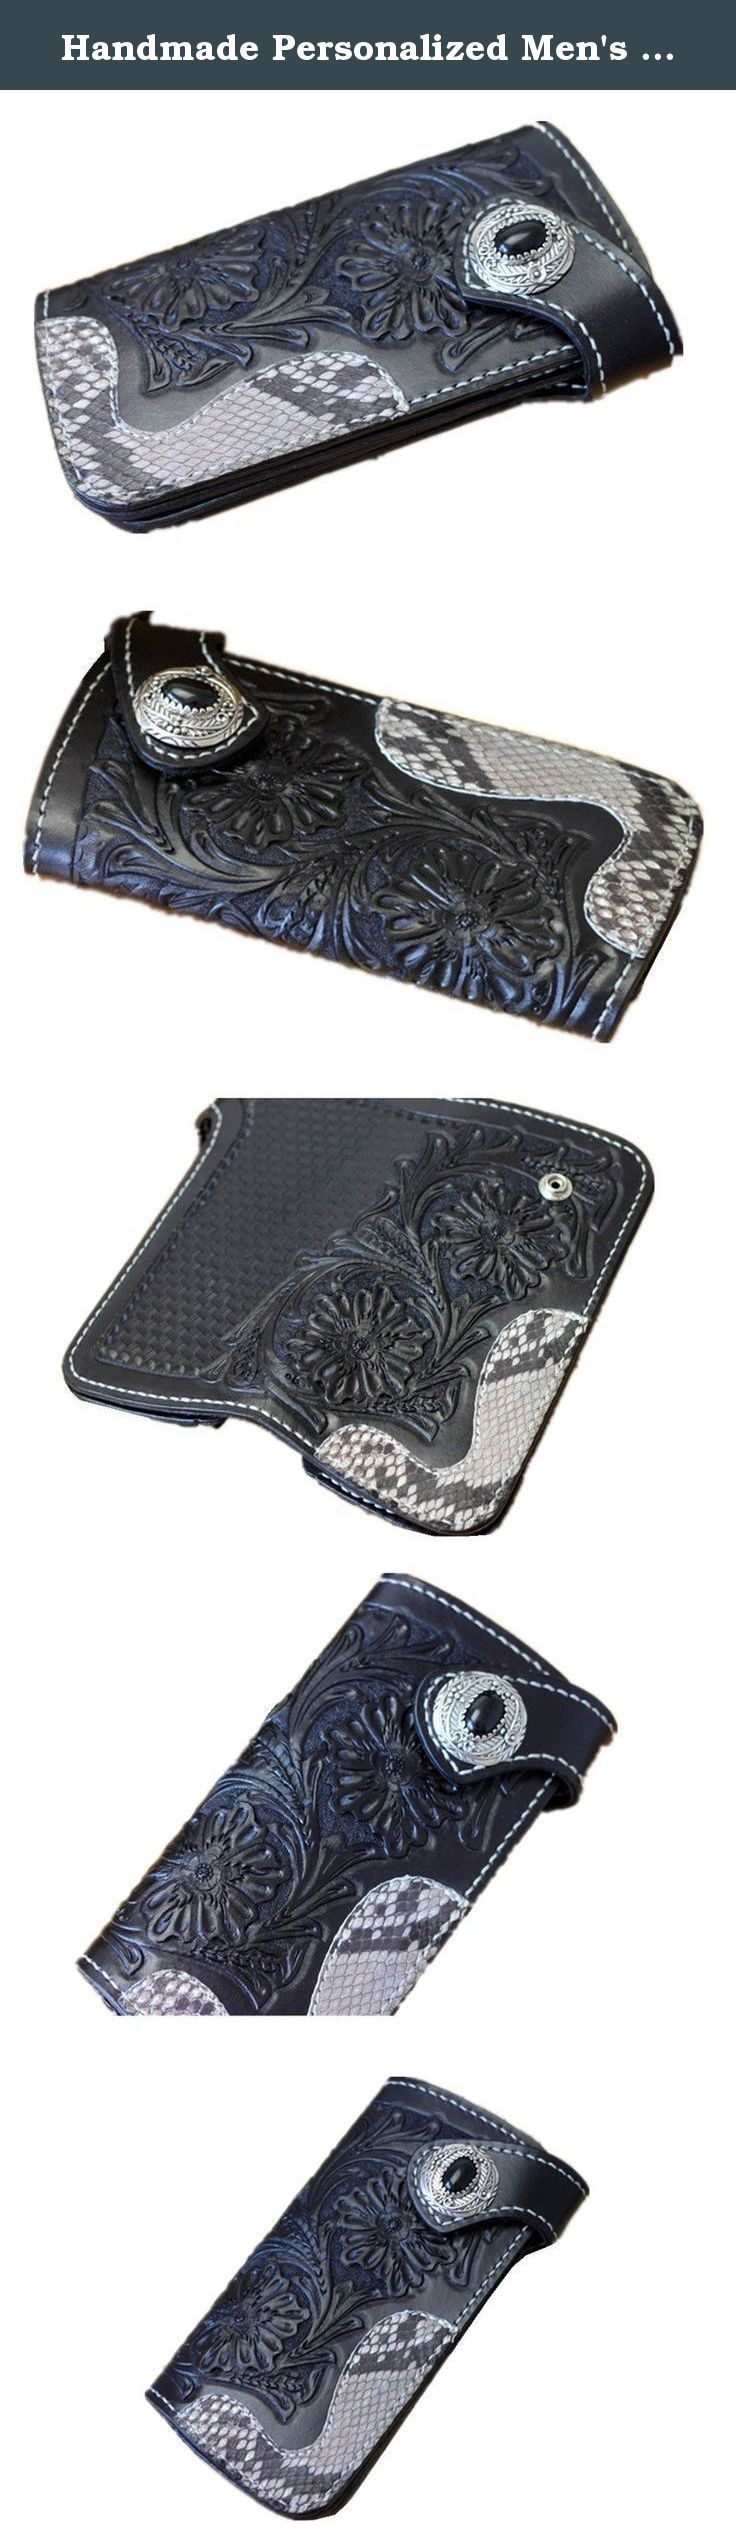 Handmade Personalized Men's Leather Wallet Vegetable Leather classics carving flower wallet purse card case Christmas Valentine's Day Gift. Handmade Personalized Men's Leather Wallet. This engraved leather wallet is the perfect men's gift. Design is elegant, composed in do not break.Delicate texture, decorative pattern, carver is exquisite.With the passage of time, it will present a belongs to the color of your personality and sense of history. It's a great gift for groomsmen, boyfriends...